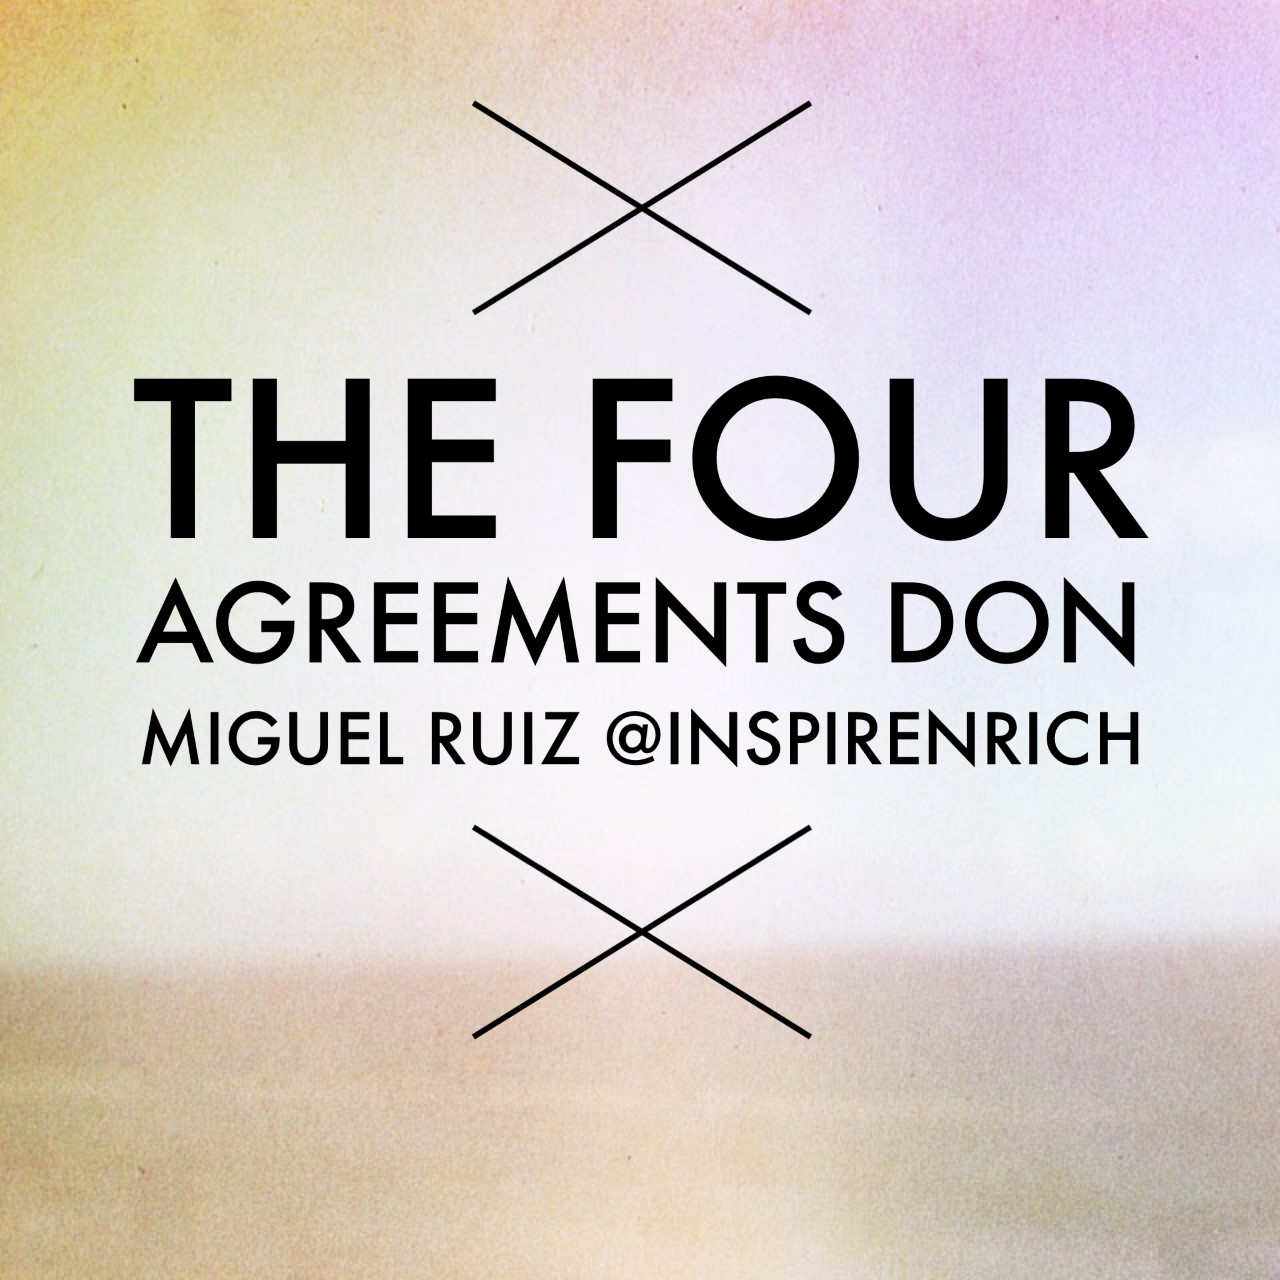 Book Summary The Four Agreements Don Miguel Ruiz